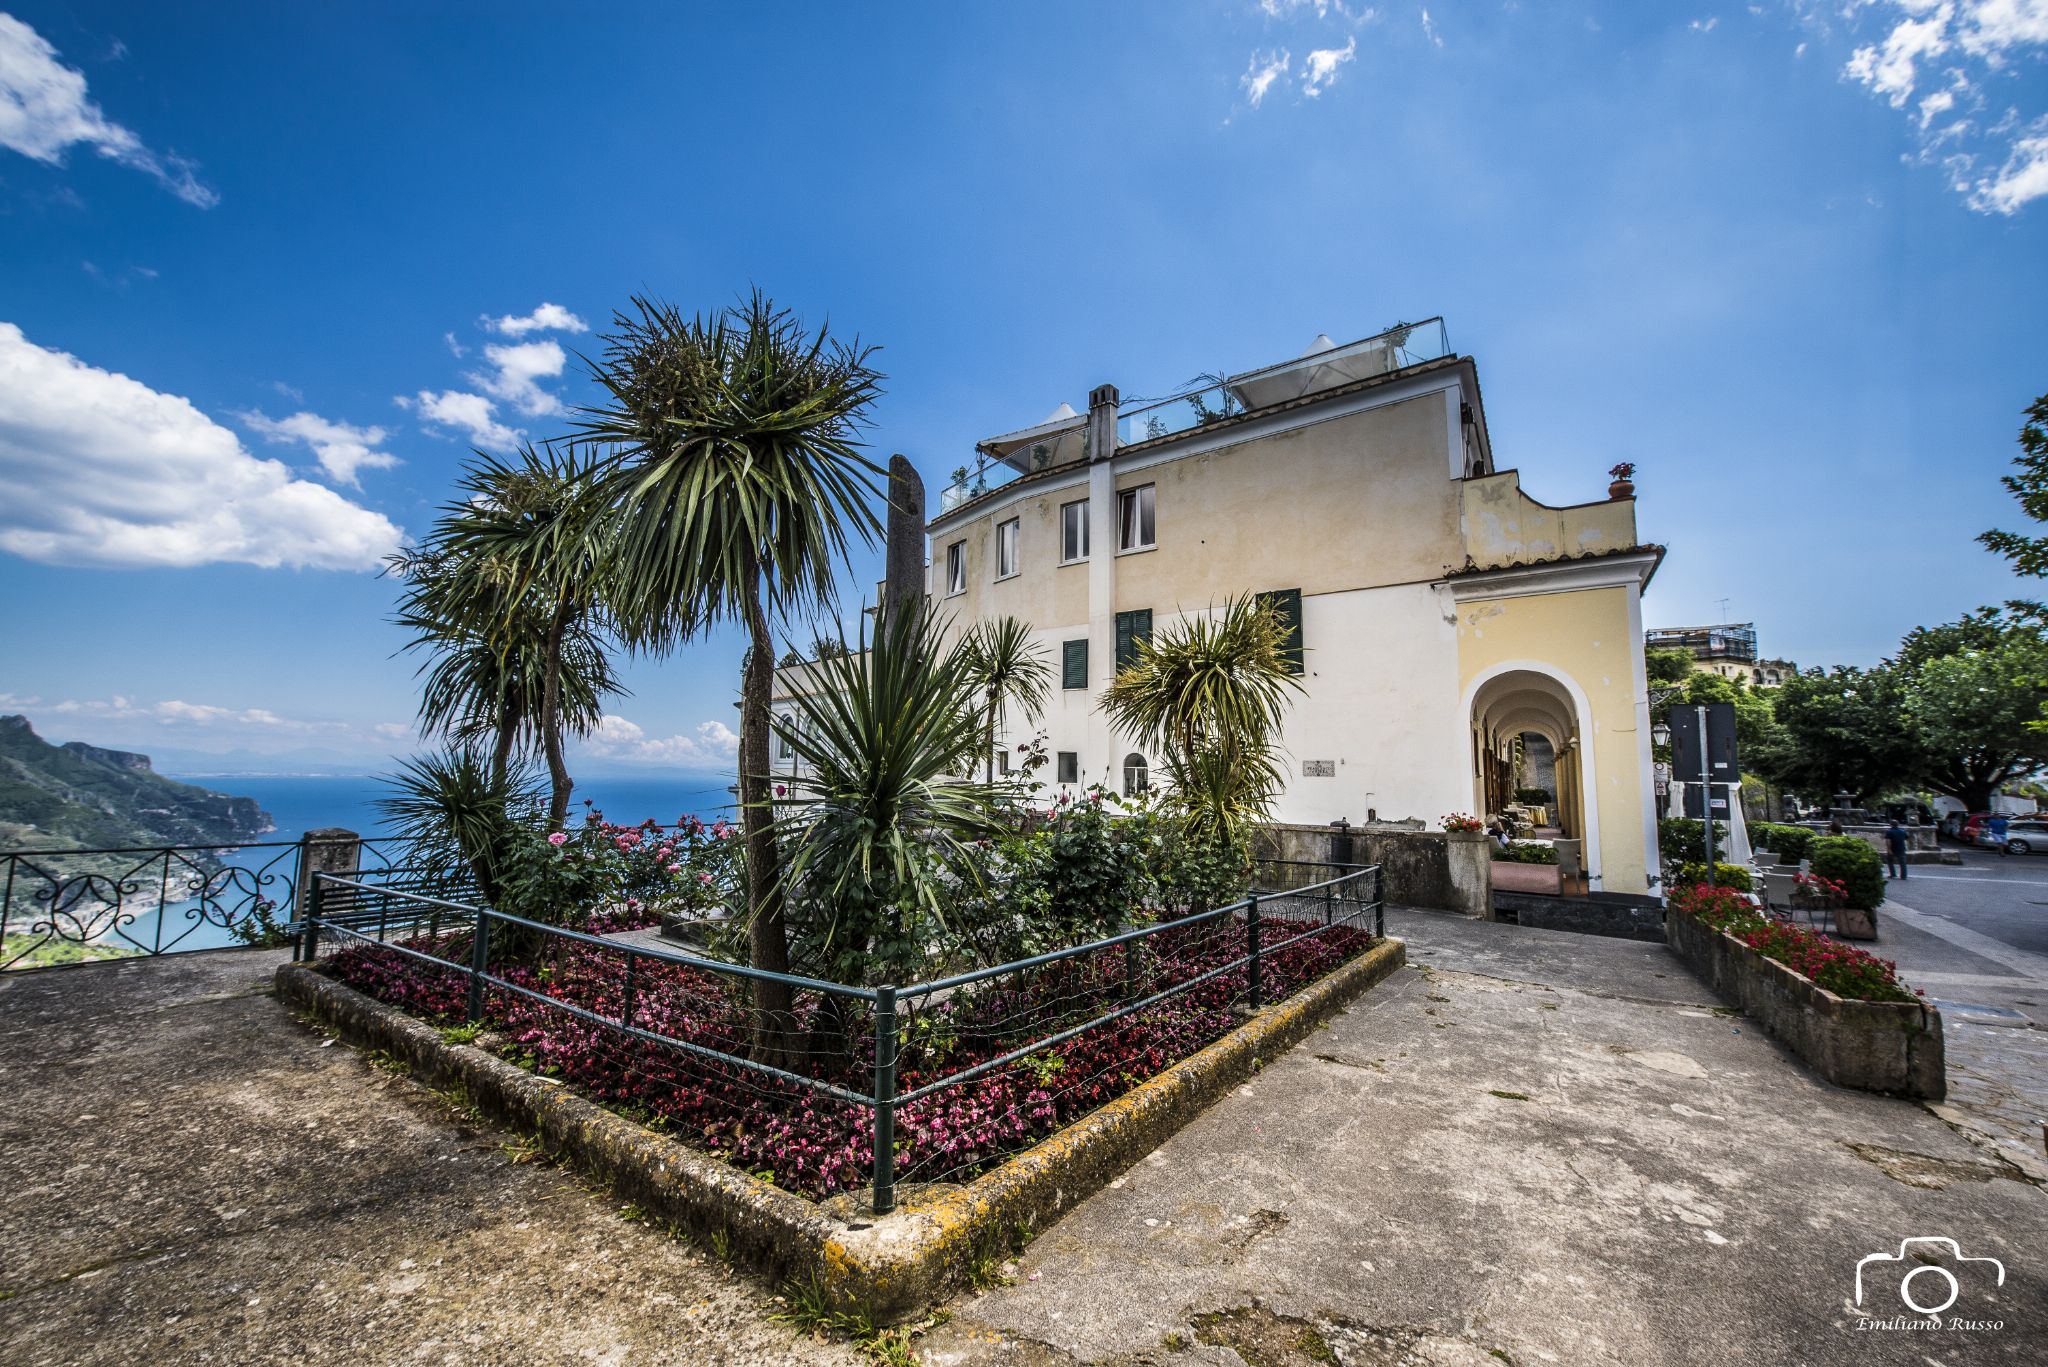 Ravello - Italy by Emiliano Russo - professional photographer